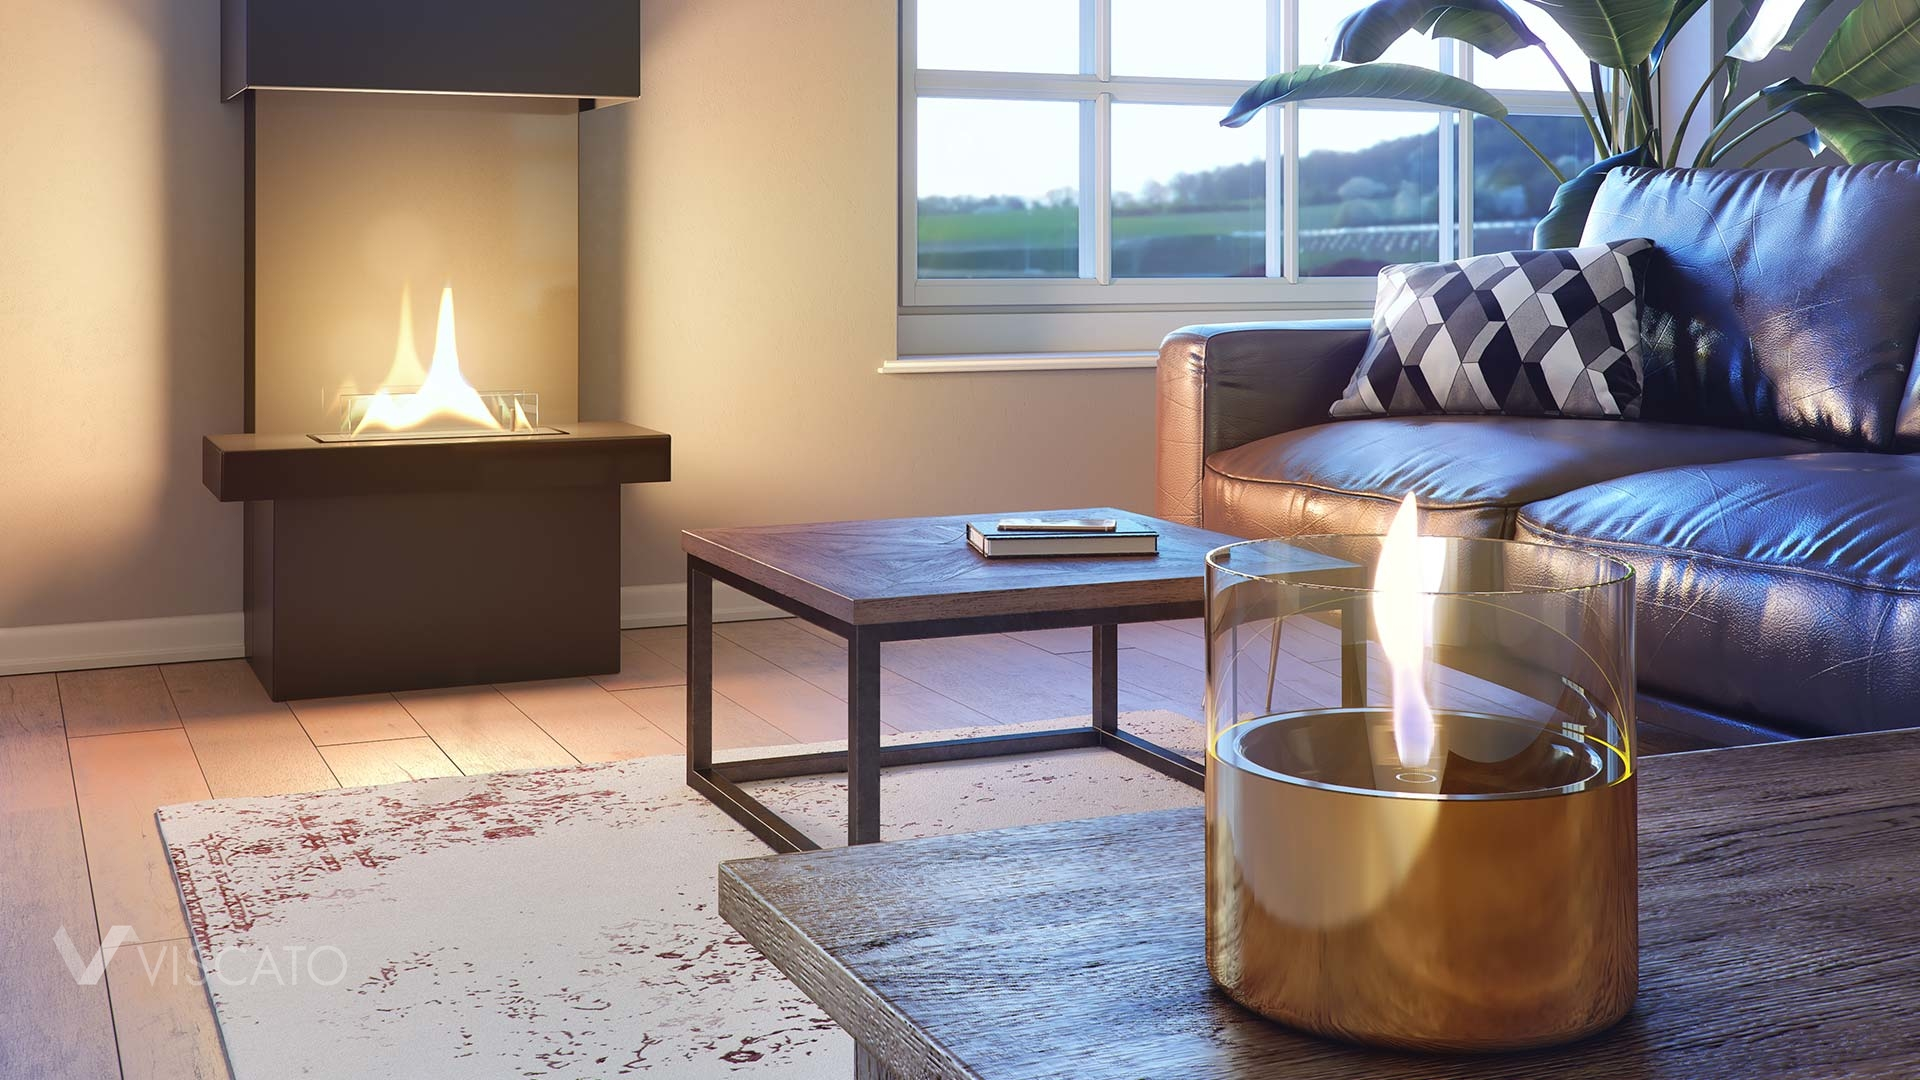 3D renderings of fireplaces in an apartment, Viscato